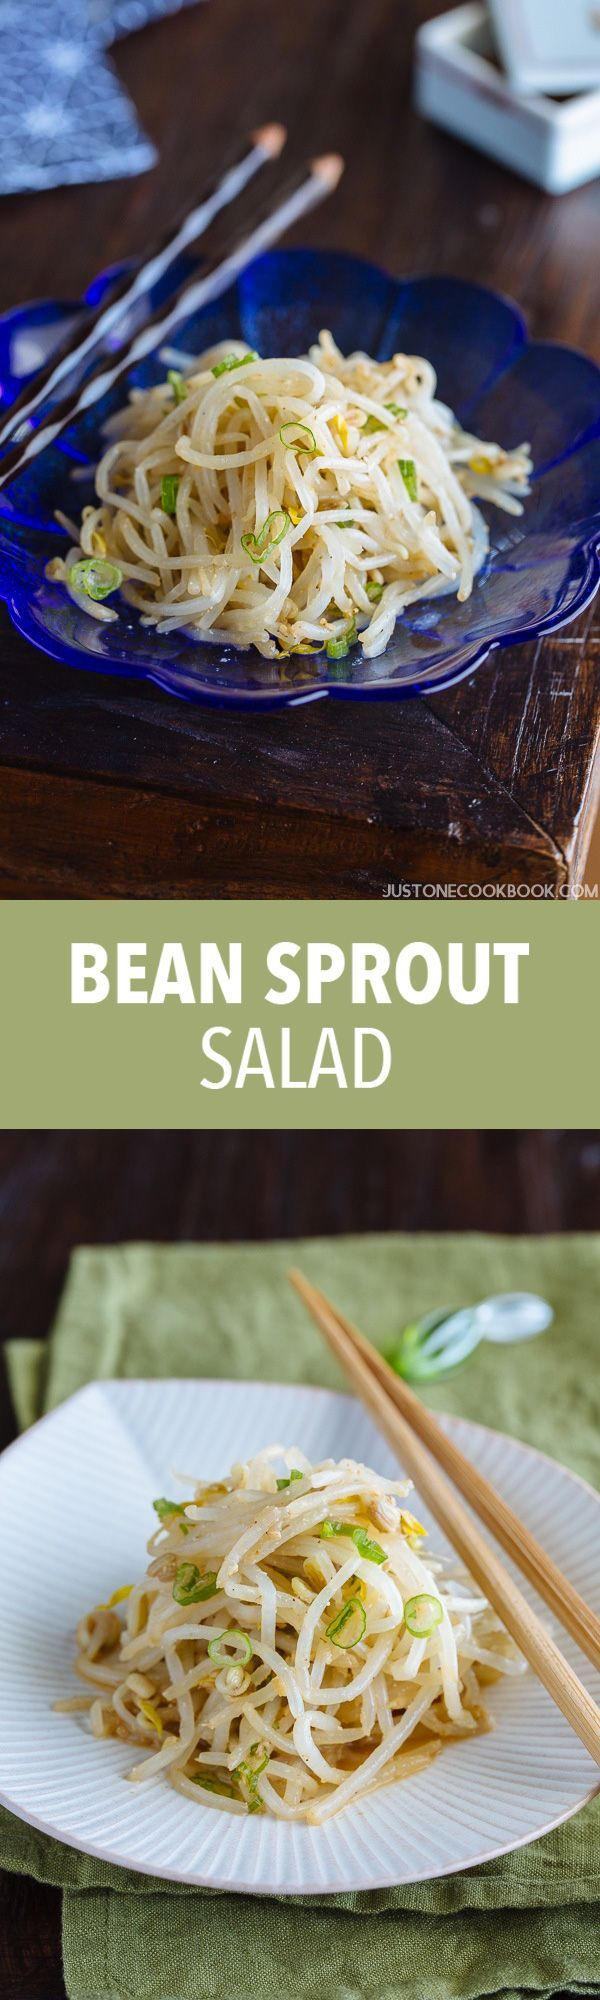 This light and refreshing Bean Sprout Salad takesonly 10 minutes to make! It's crunchy, nutty, and so addicting! It's a perfect side dish for Asian meals!